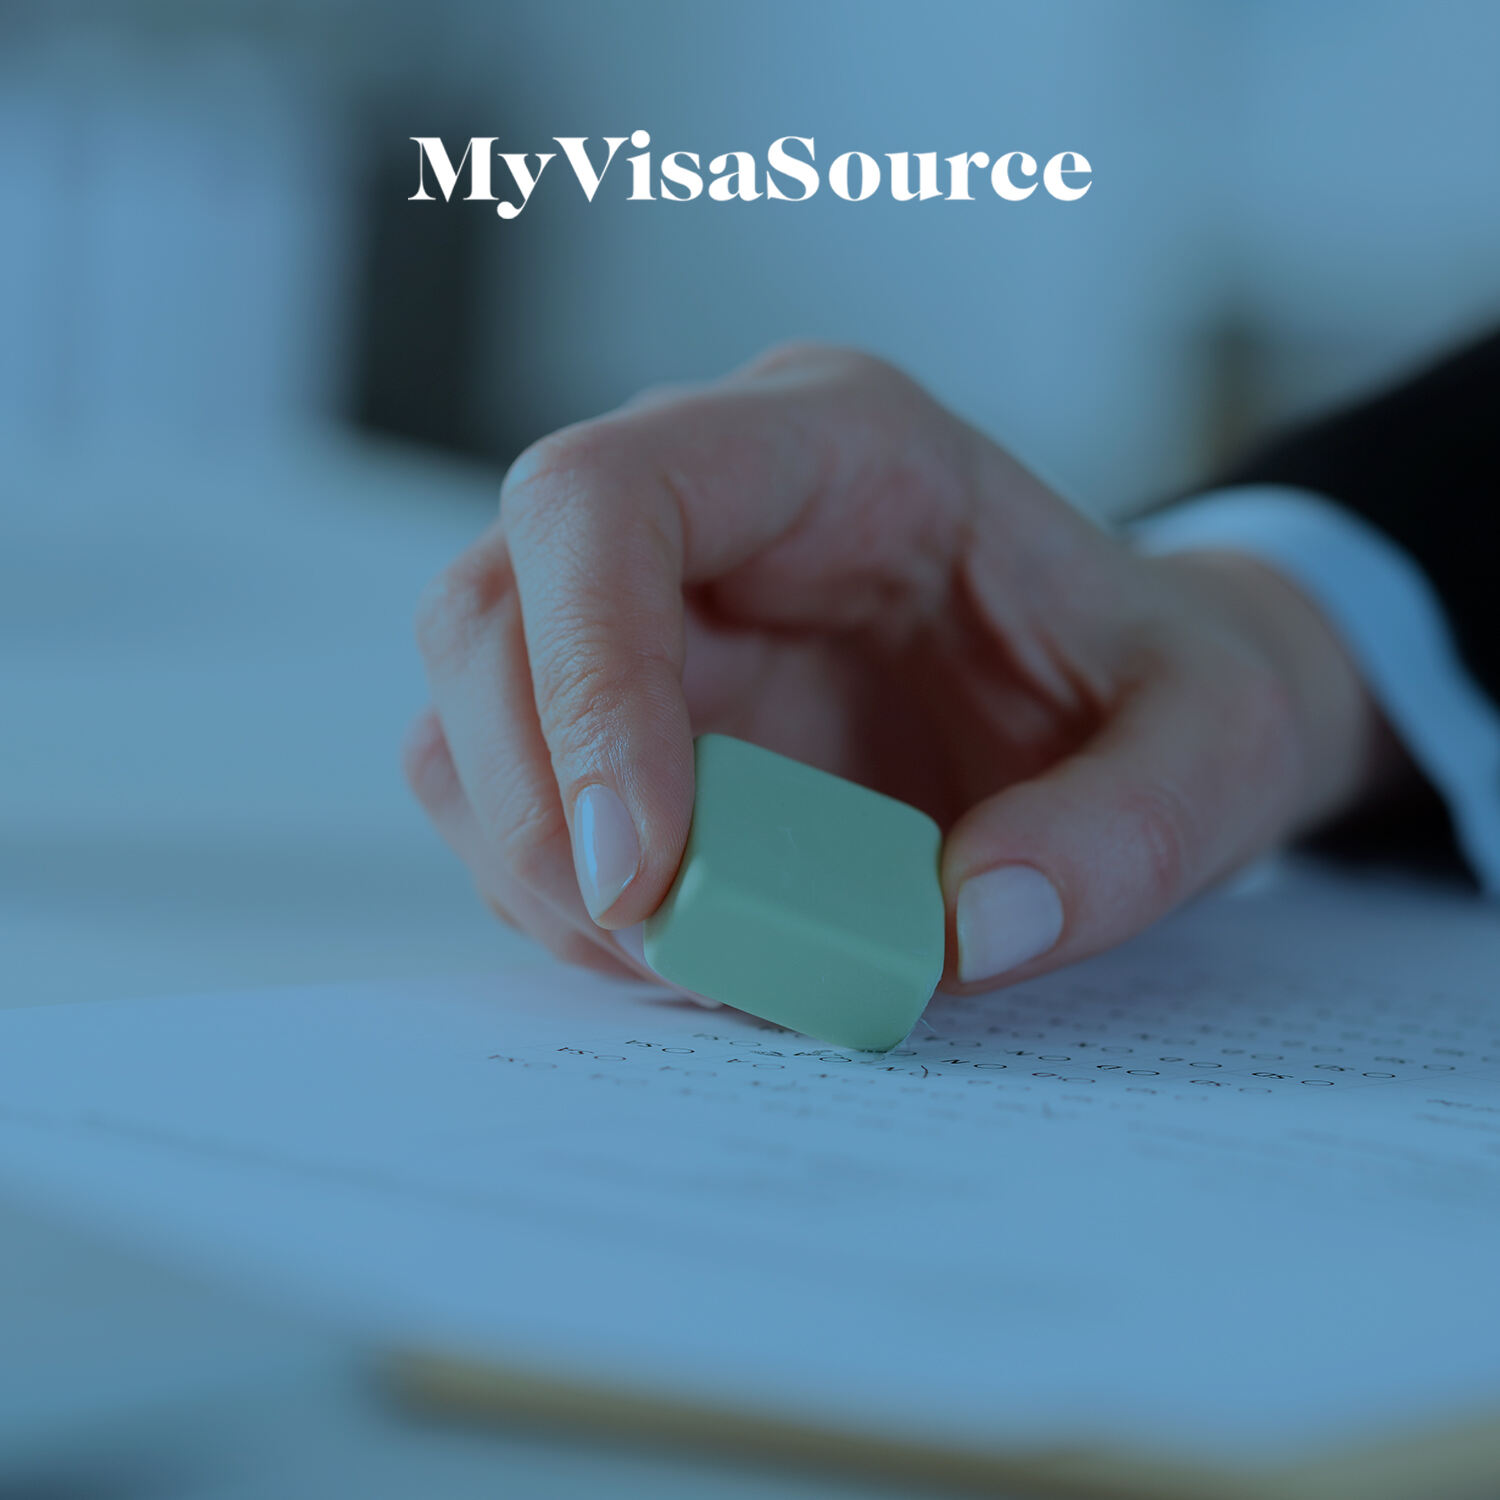 hand holding an eraser changing a document my visa source